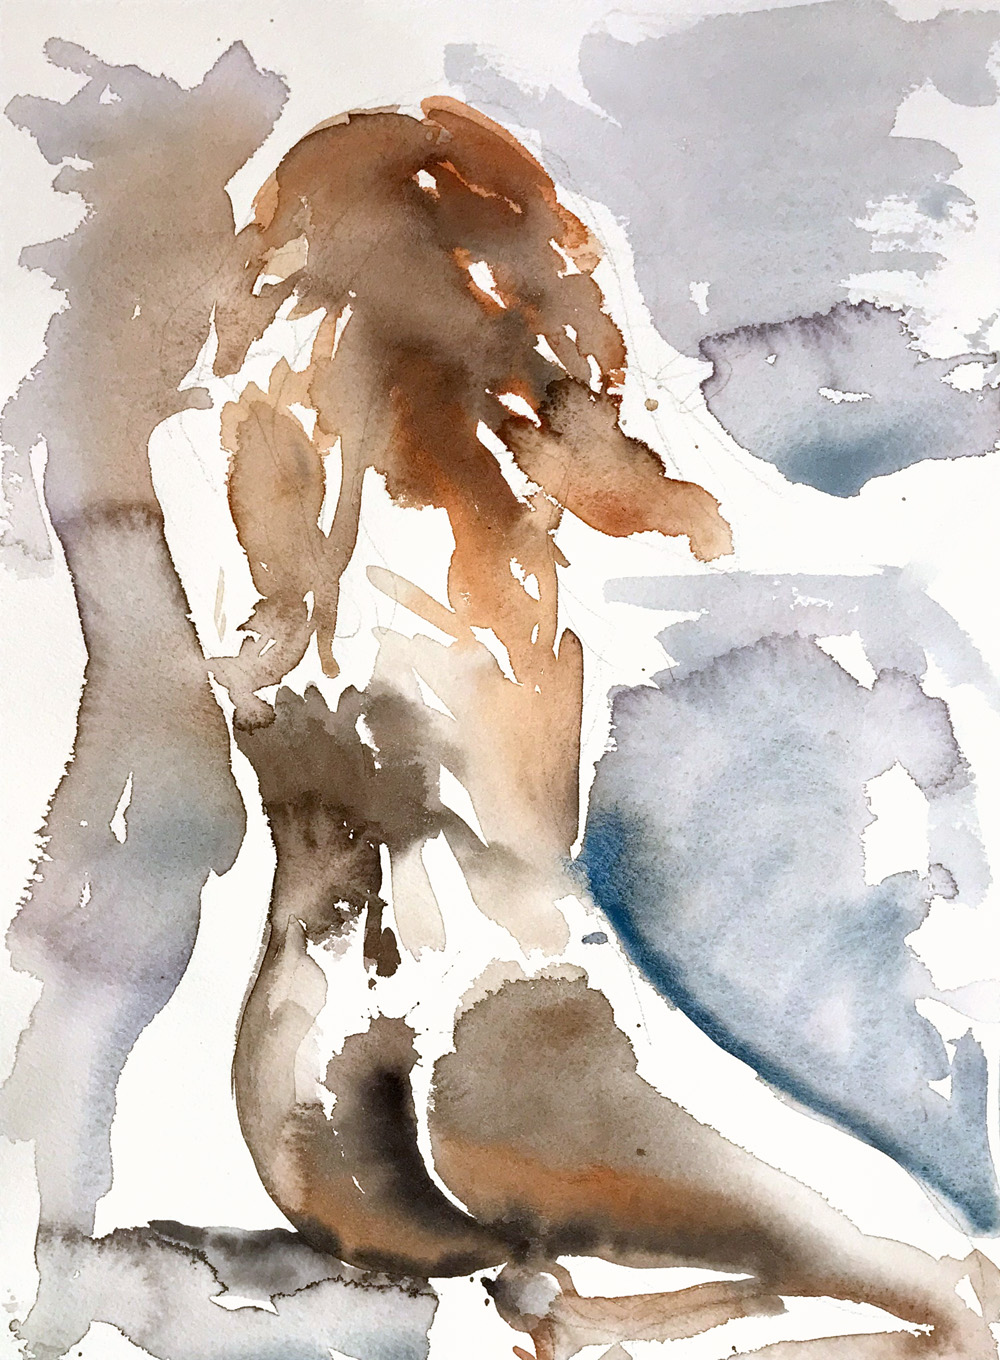 Indira-Cesarine-Anna-2018-Watercolor-on-paper-003.jpg